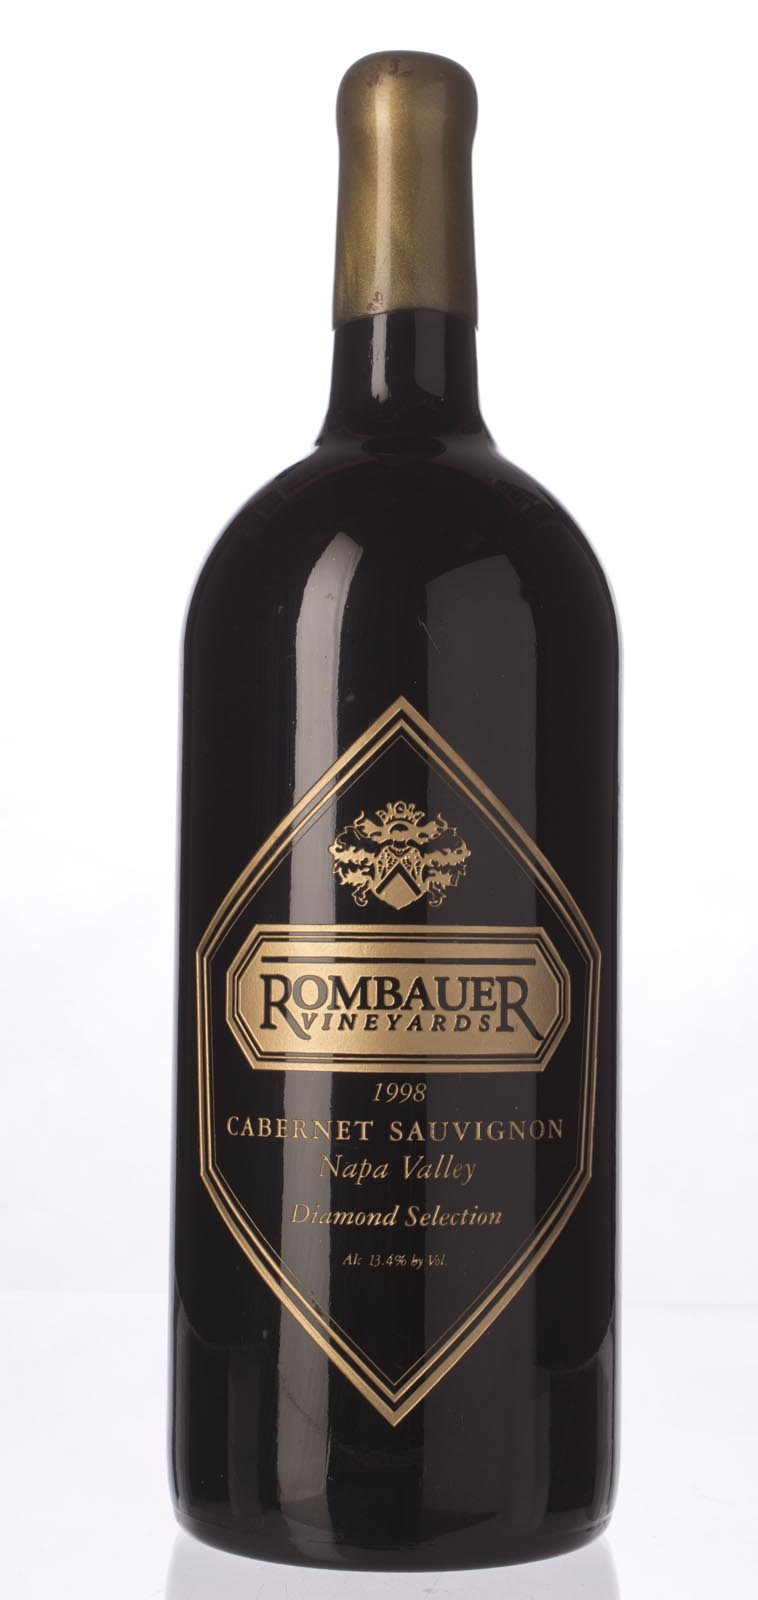 Rombauer Cabernet Sauvignon Napa Valley Diamond Selection 1998, 3L () from The BPW - Merchants of rare and fine wines.